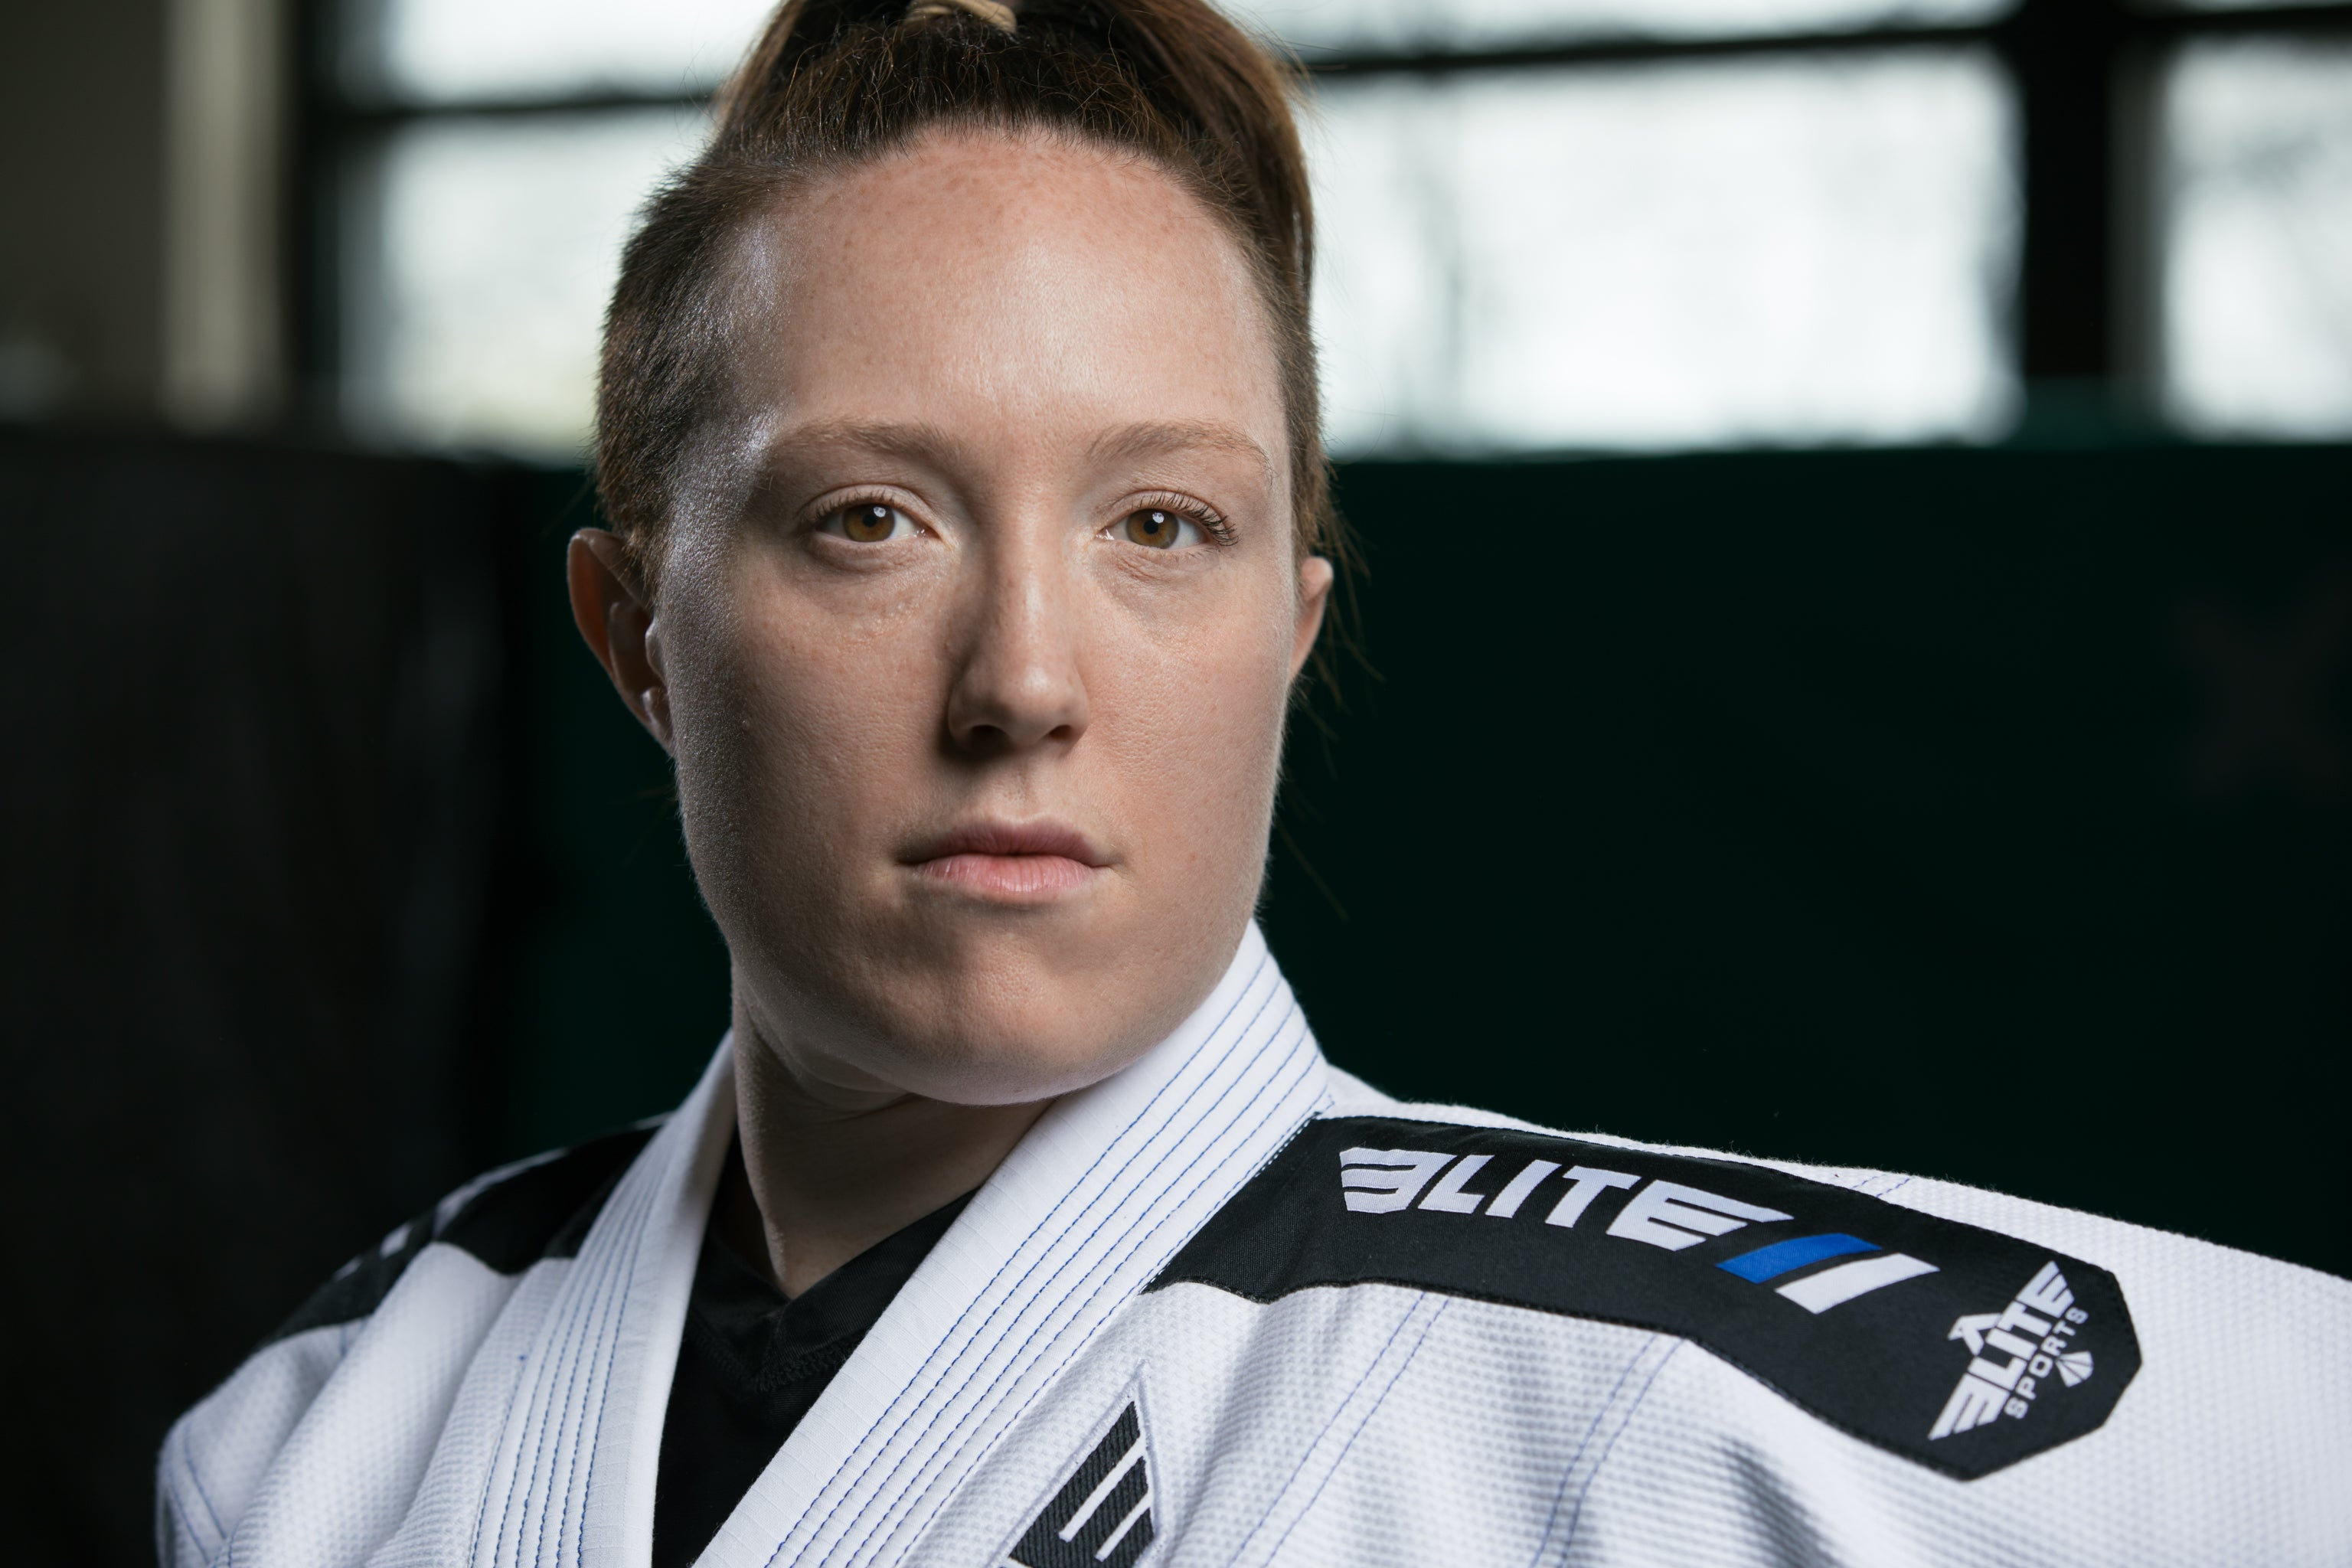 Elite Sports Team Elite Bjj Fighter Jessica Michelle Sunier Image1